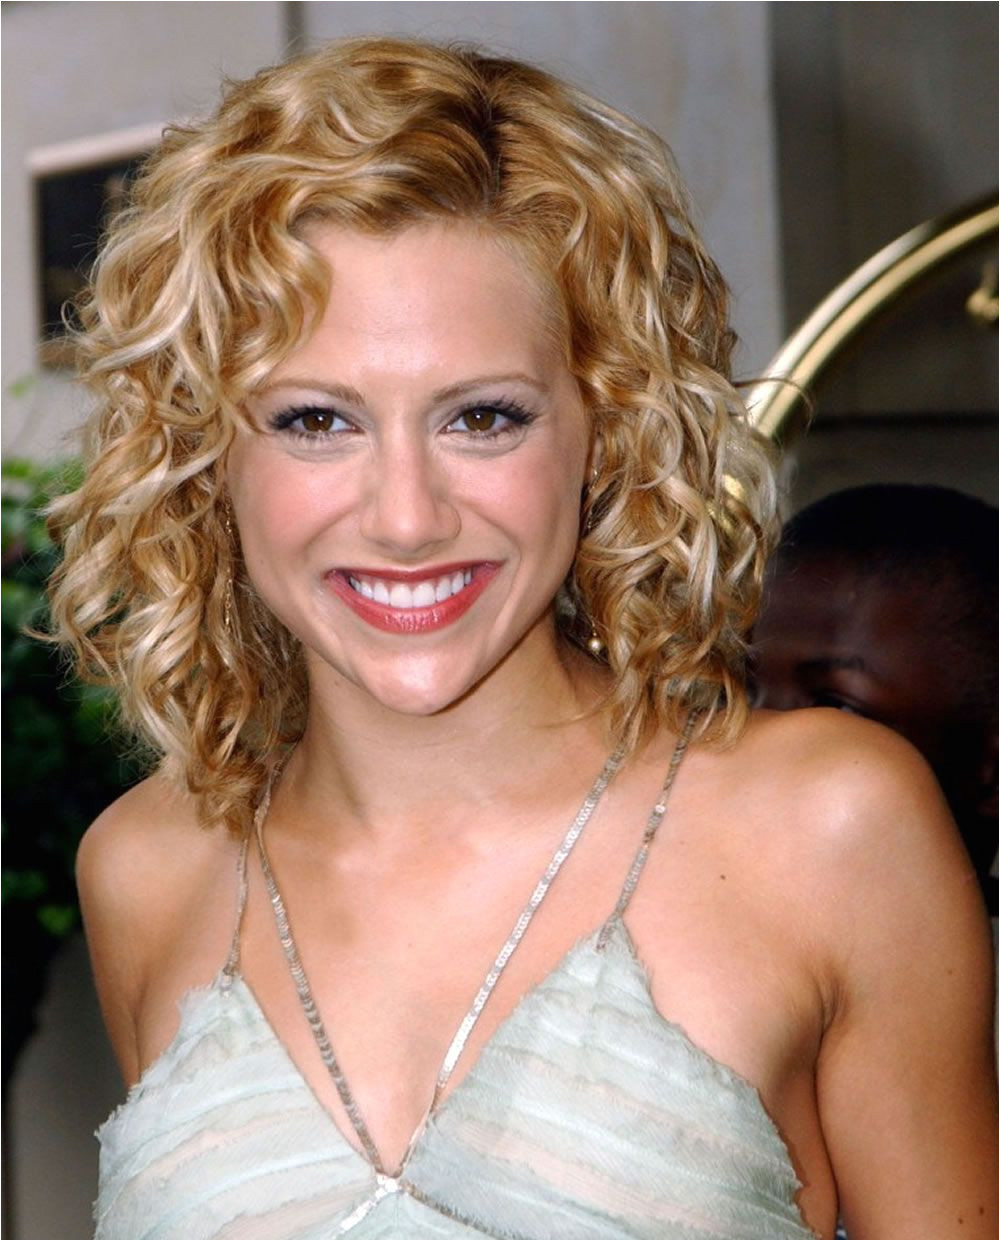 Long bob hairstyles for curly hair 2019 curly hair 2019 hairstyles for curly hair haircuts for curly hair hairstyles for wavy hair latest hairstyles for